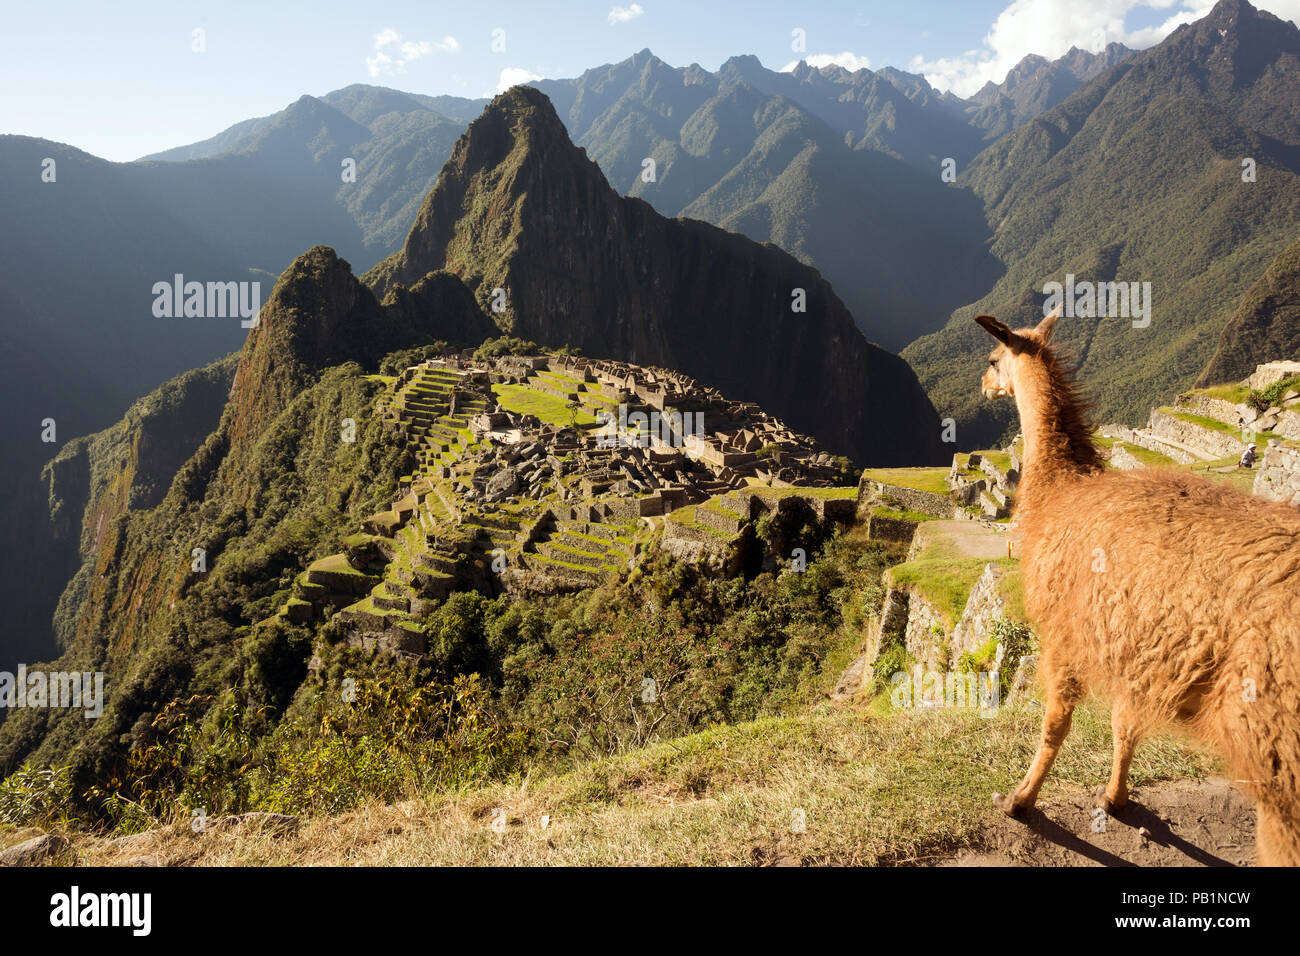 Llama looking at Machu Picchu Inca ruins in a sunny day - Stock Image